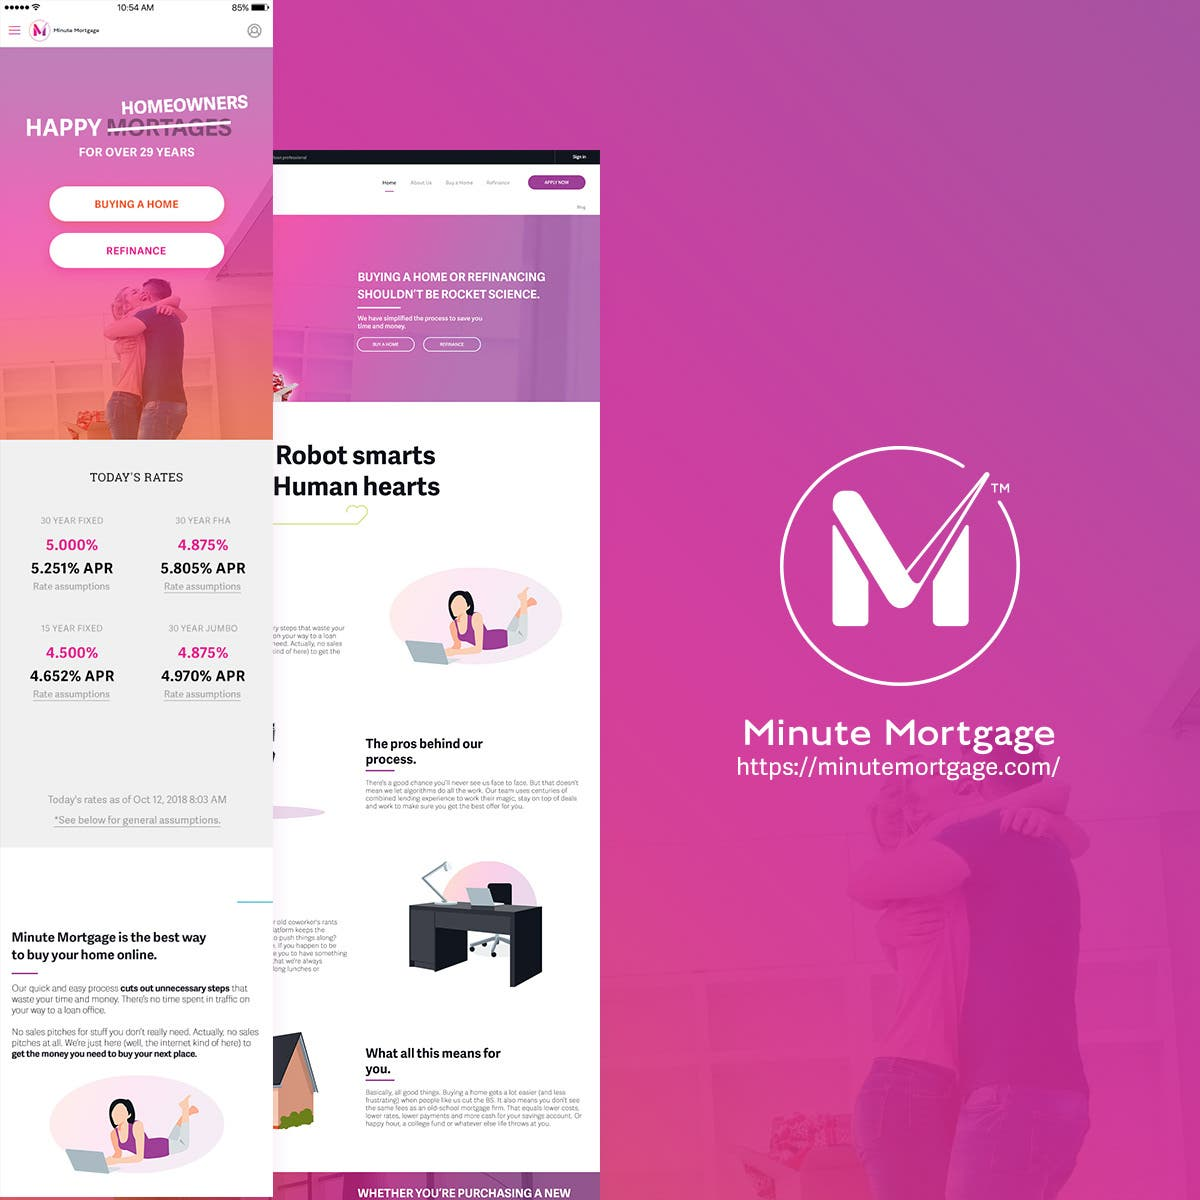 Minute Mortgage website